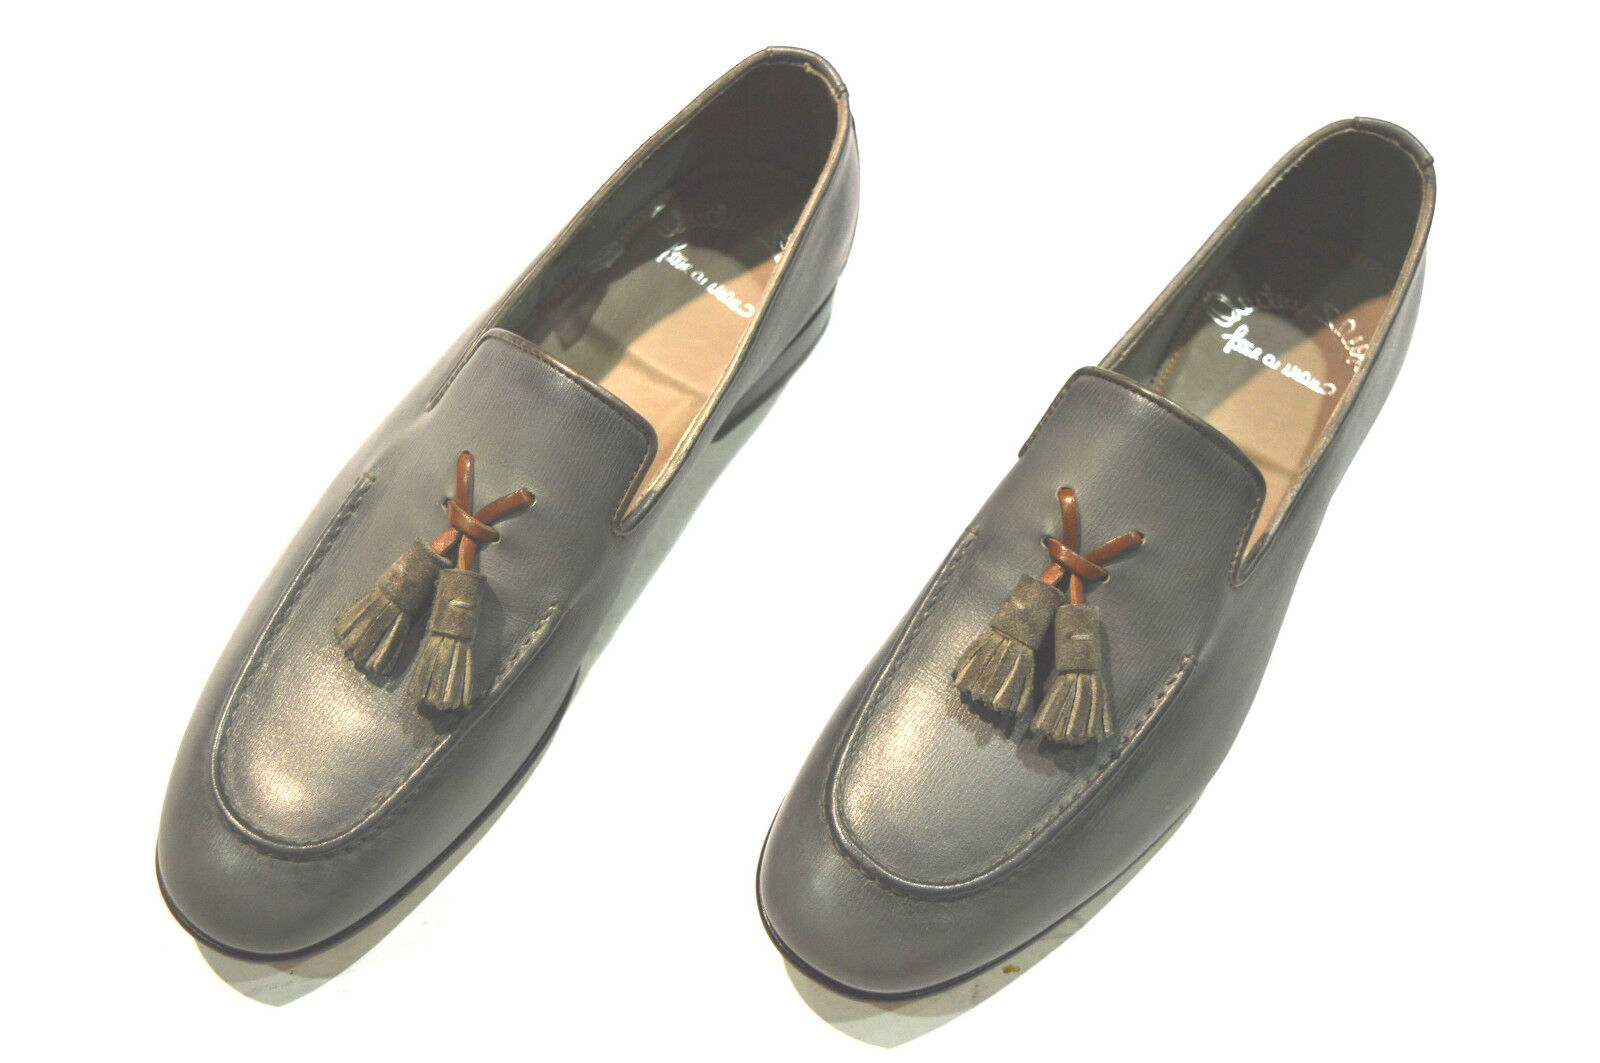 NEW SANTONI  Loafers Shoes Size Eu 42 Uk 8 Us 9  Made in Italy OT 6